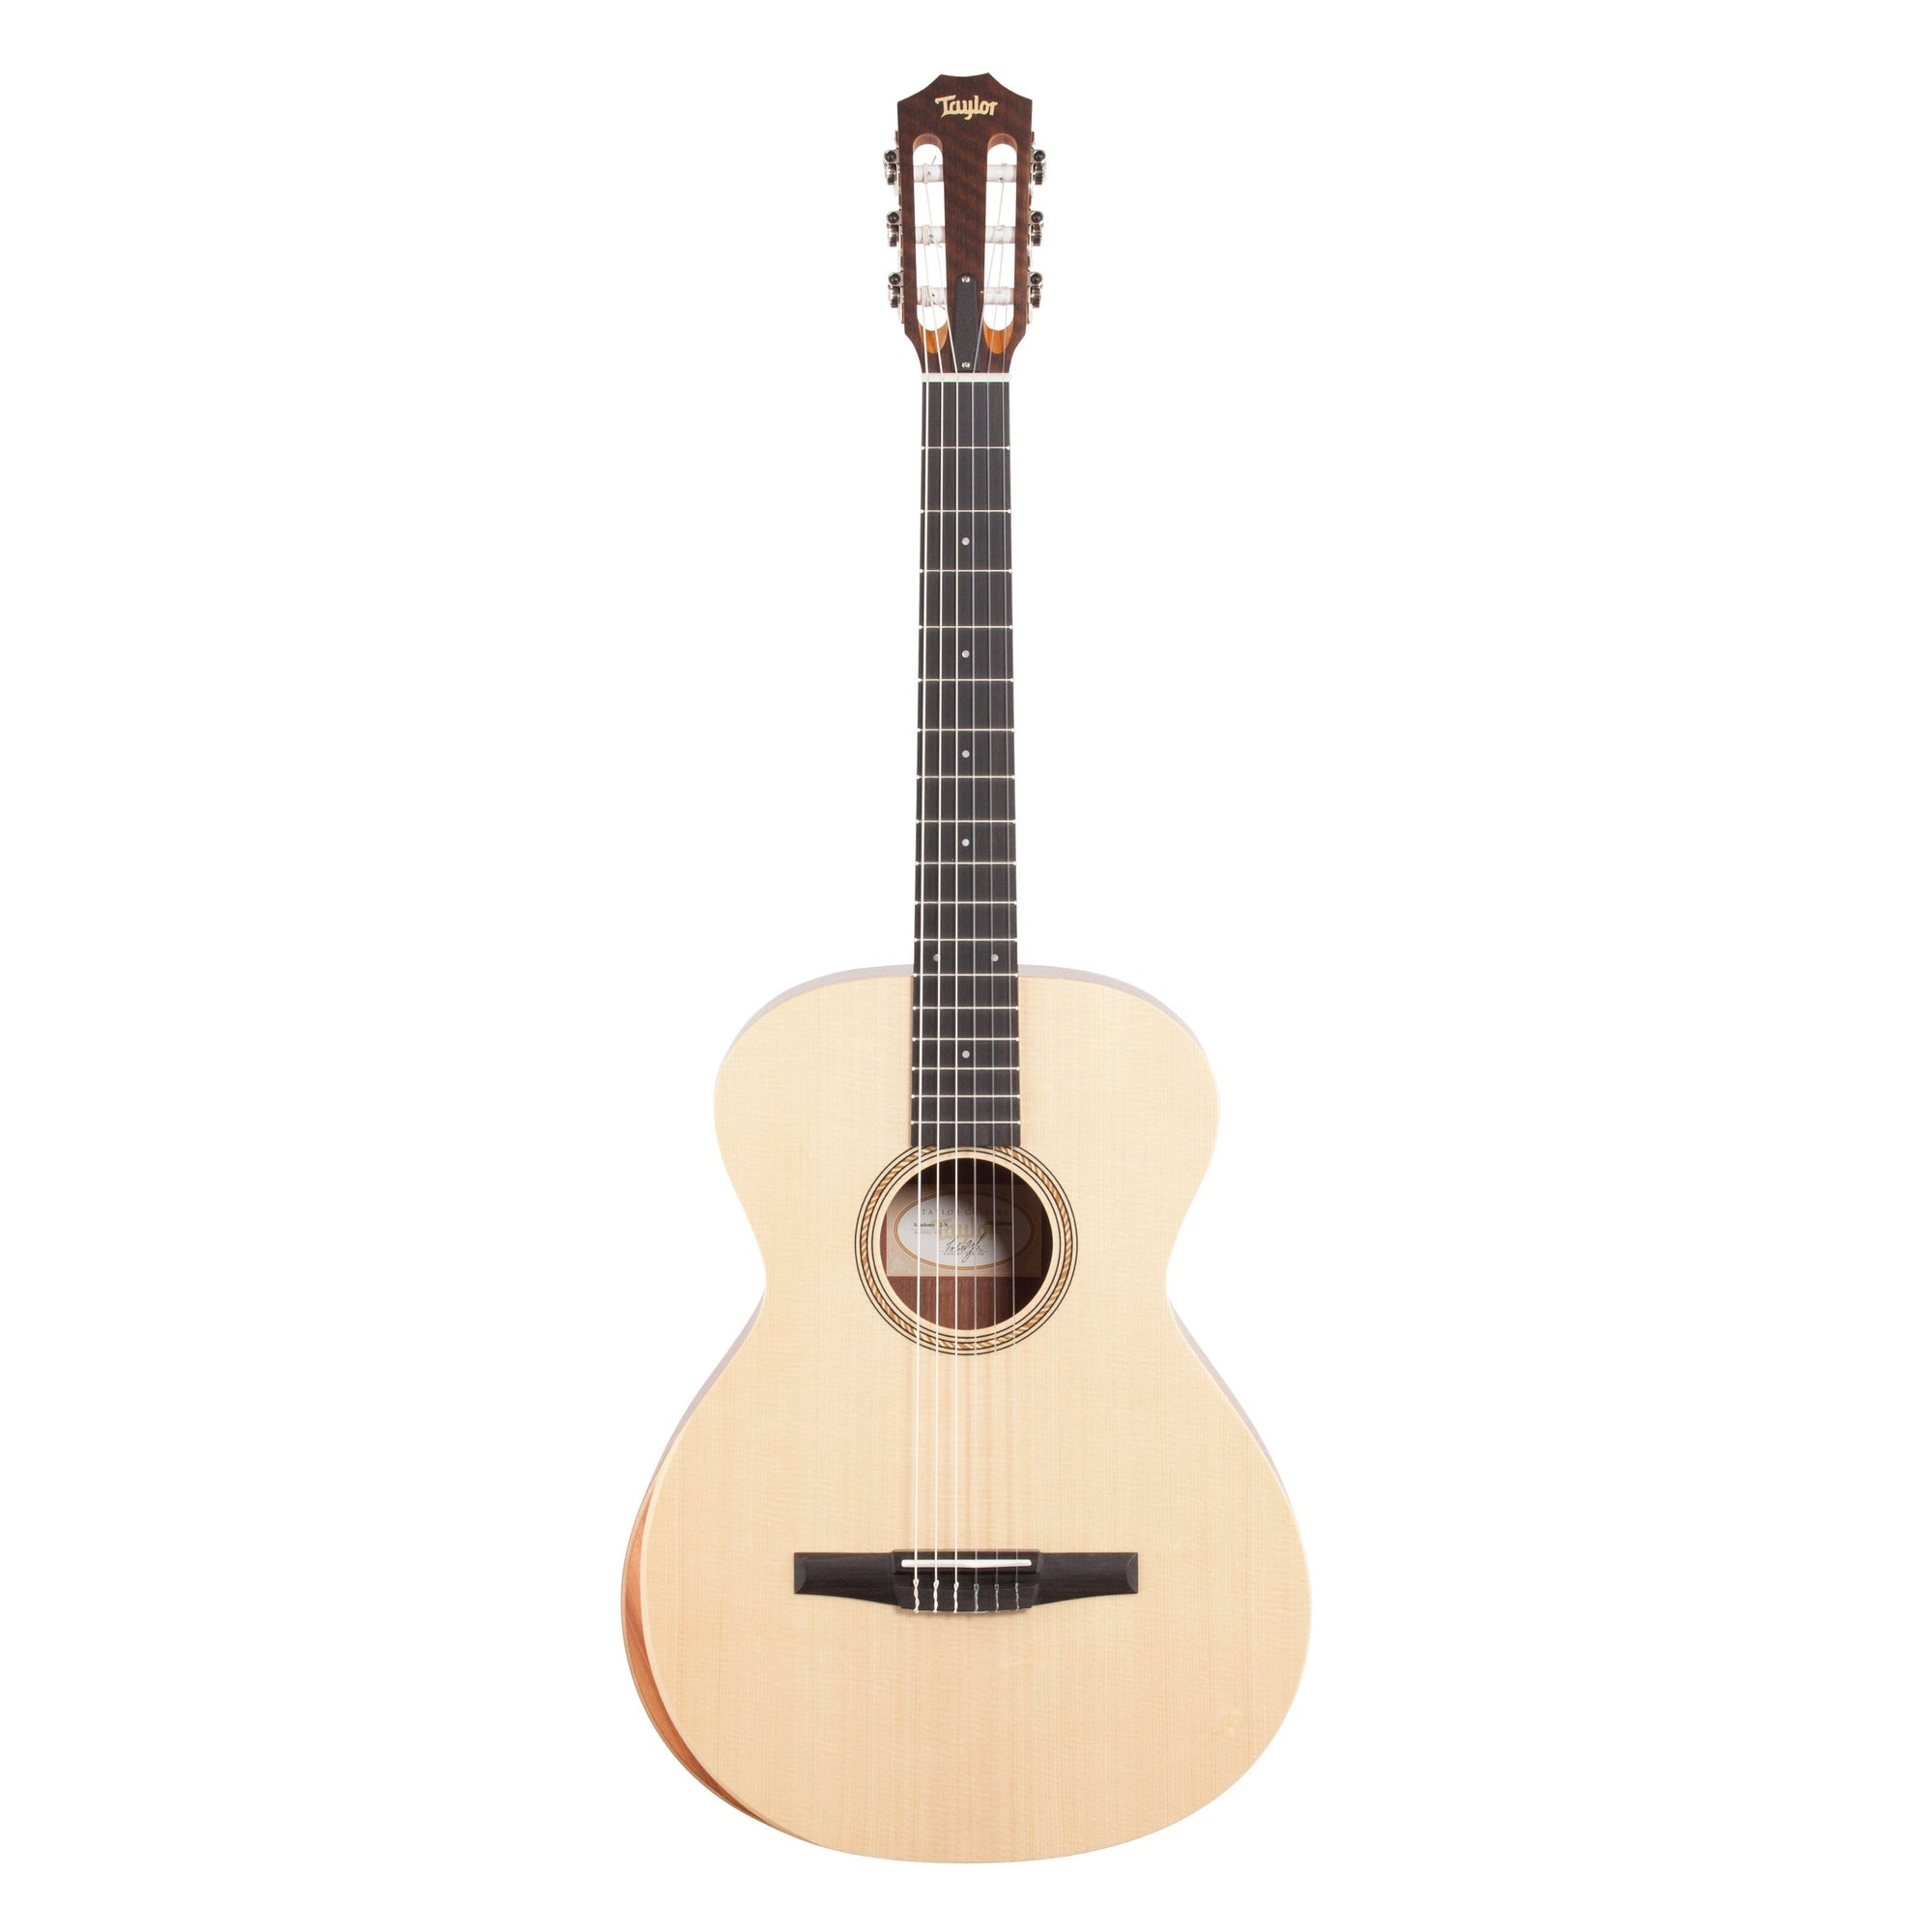 Taylor A12N Academy Series Grand Concert Classical Acoustic Guitar (with Gig Bag)